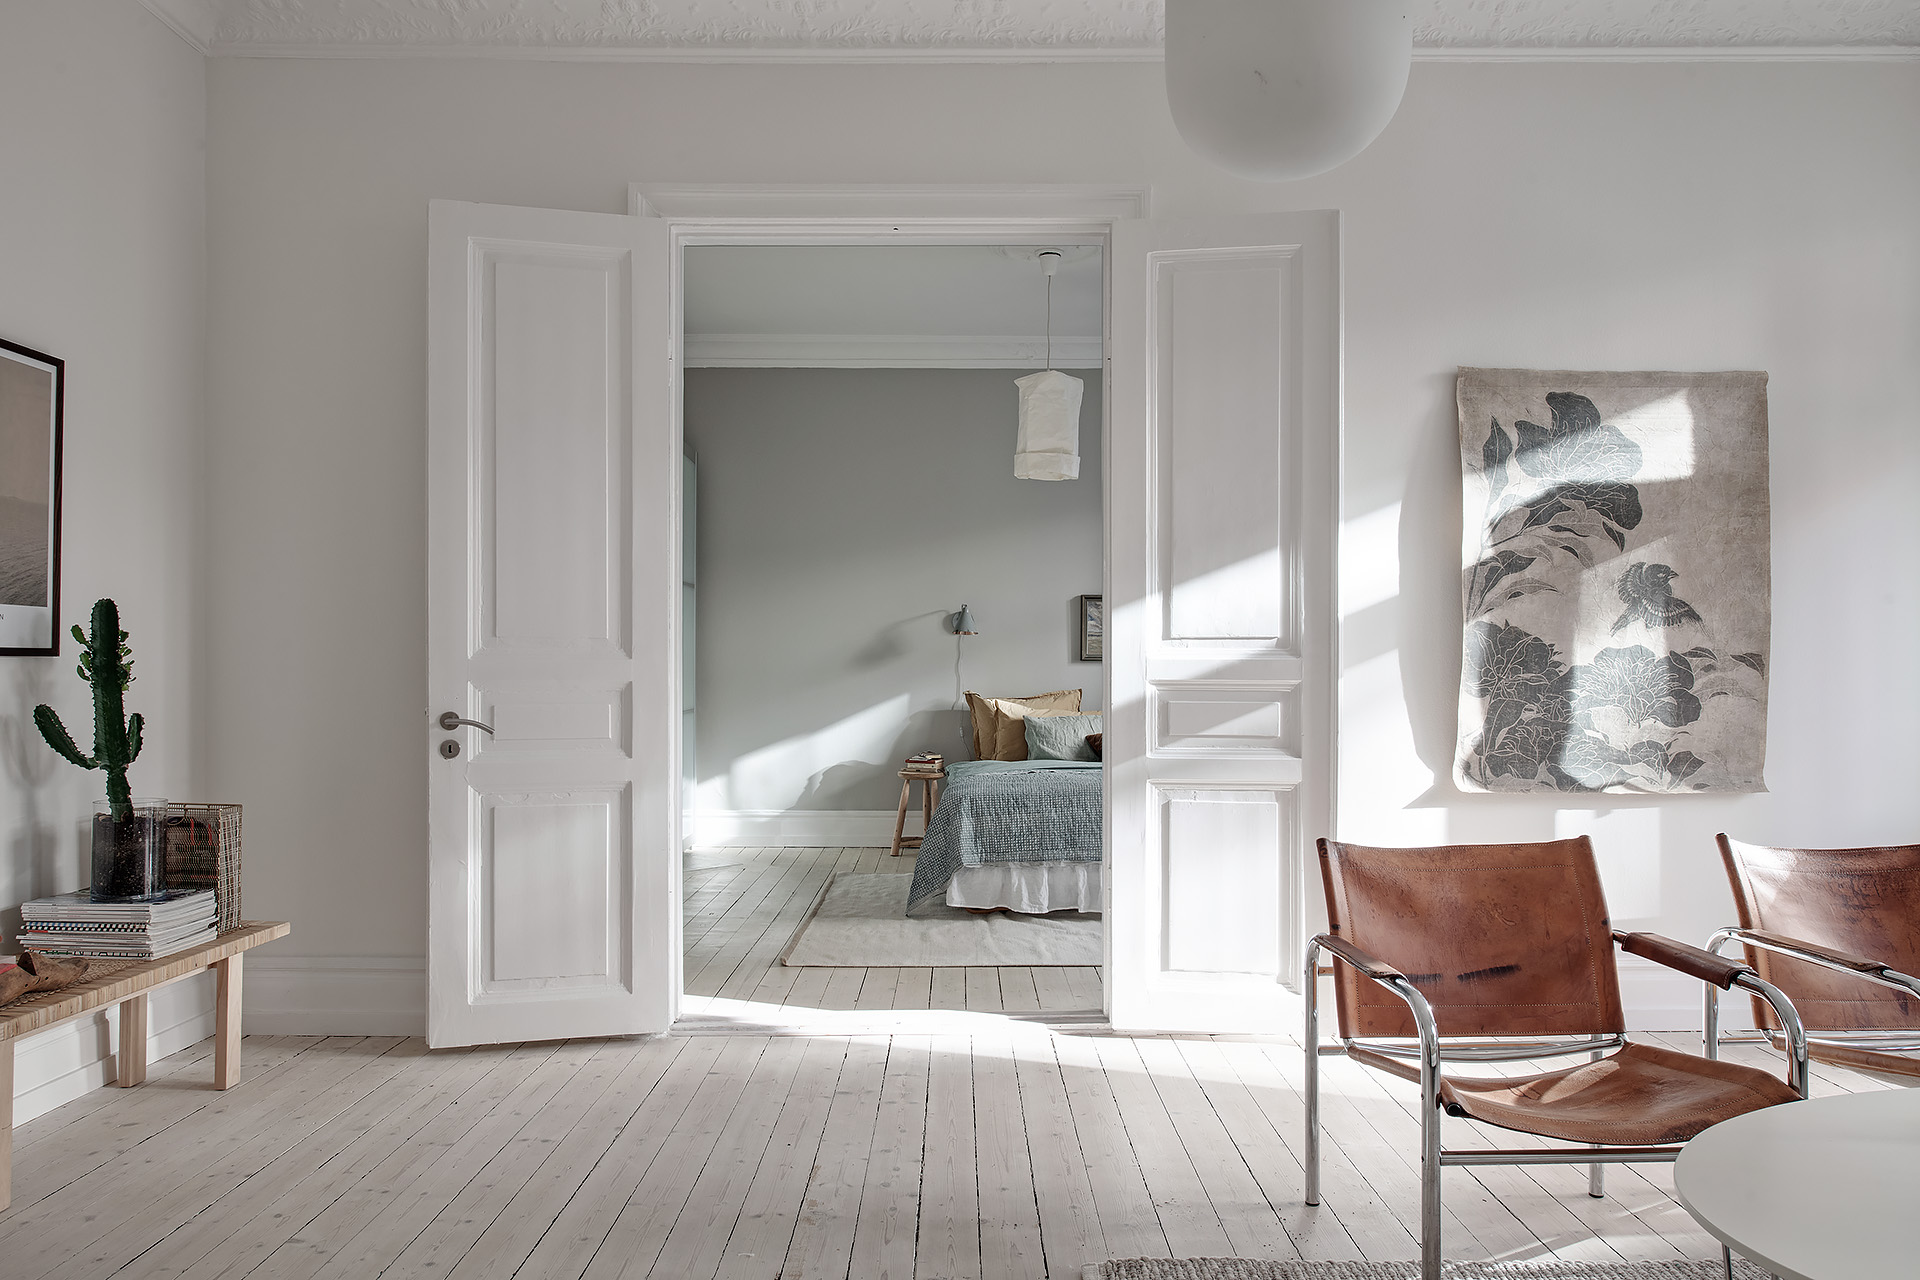 Look At This Beautiful Pale Green Bedroom Peaking Through These Historical  Wing Doors From The Living Room. The Walls Are Painted In A Warm Grey, ...